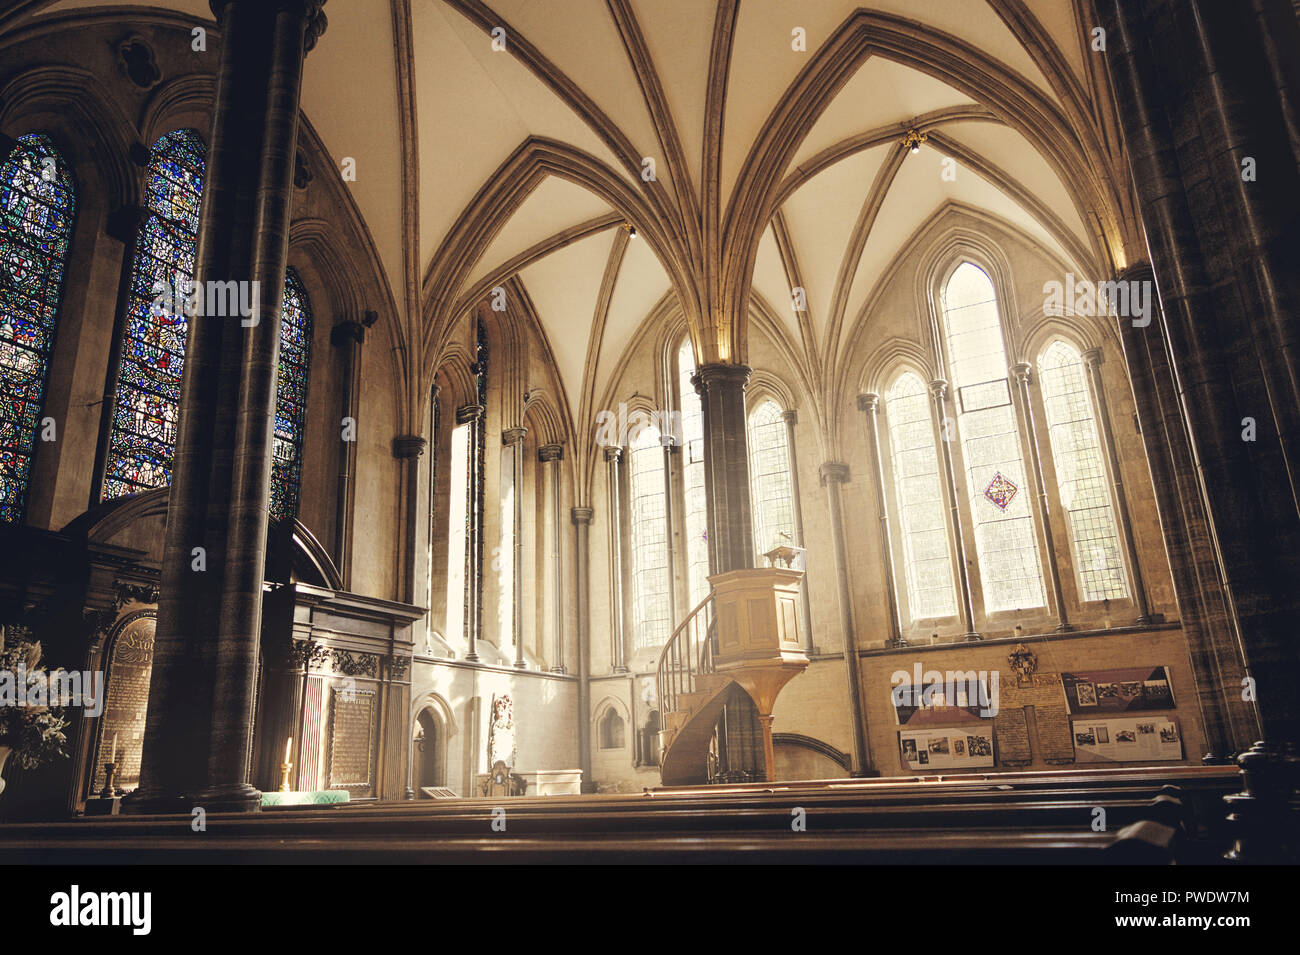 Pulpit and stained glass windows in Temple Church in London. - Stock Image